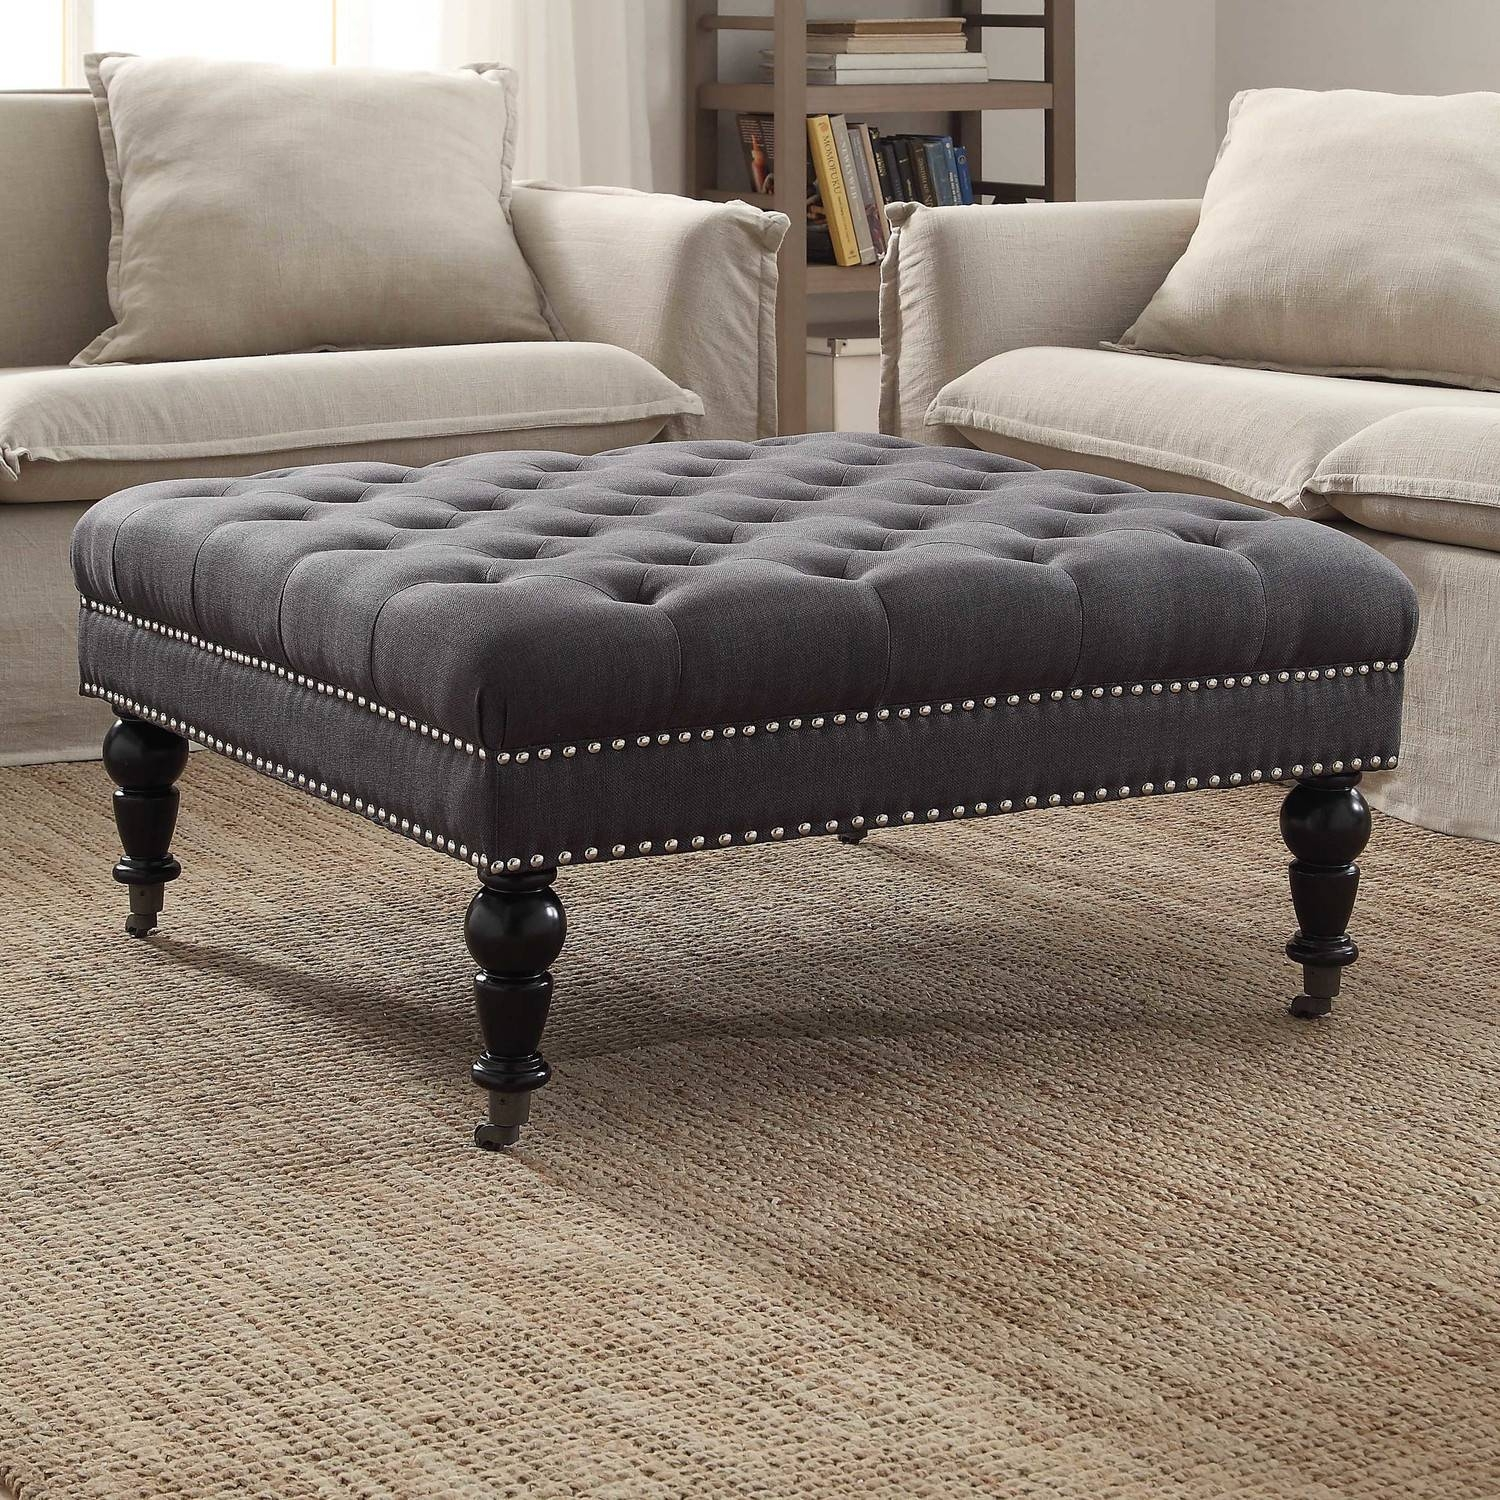 Furniture: Nice Oversized Ottoman For Living Room Furniture Idea intended for Round Upholstered Coffee Tables (Image 16 of 30)